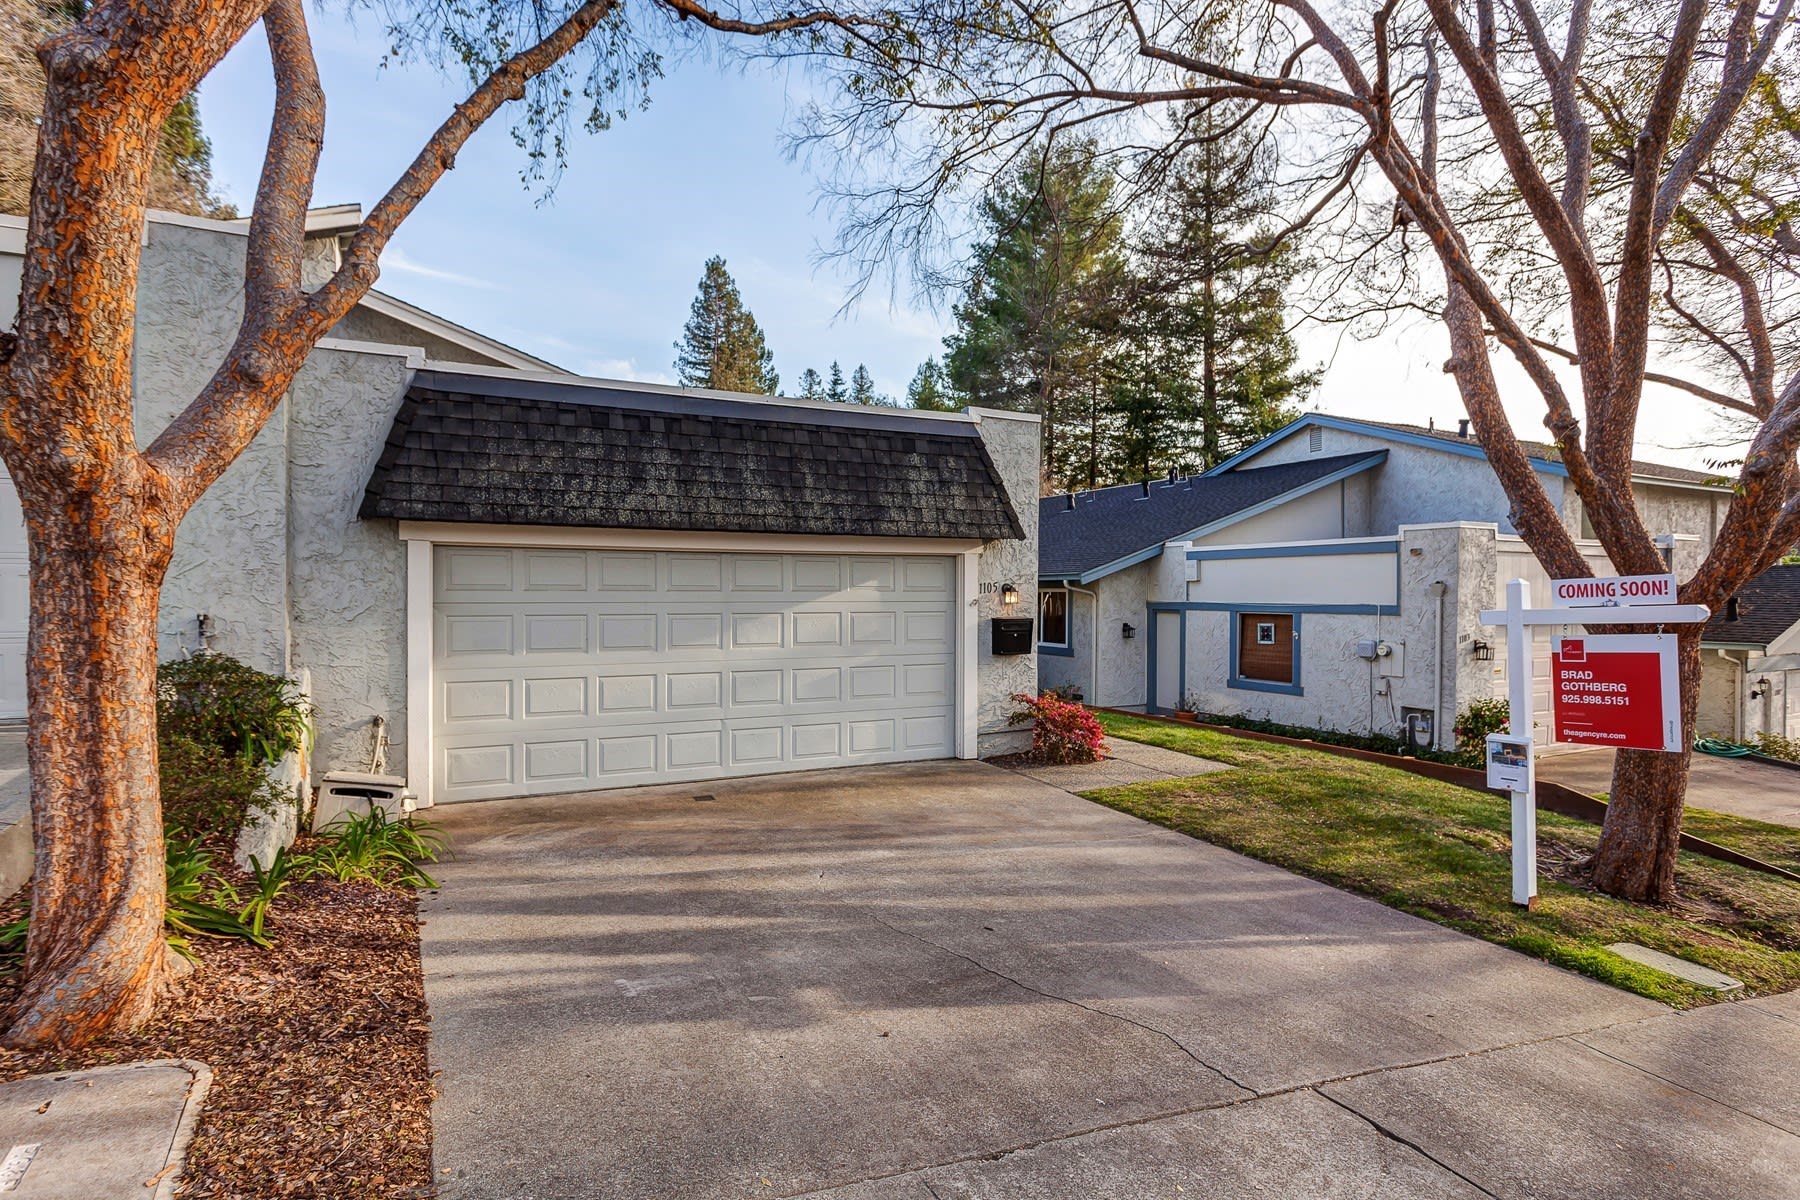 1105 Glengarry Ln - Rudgear Estates